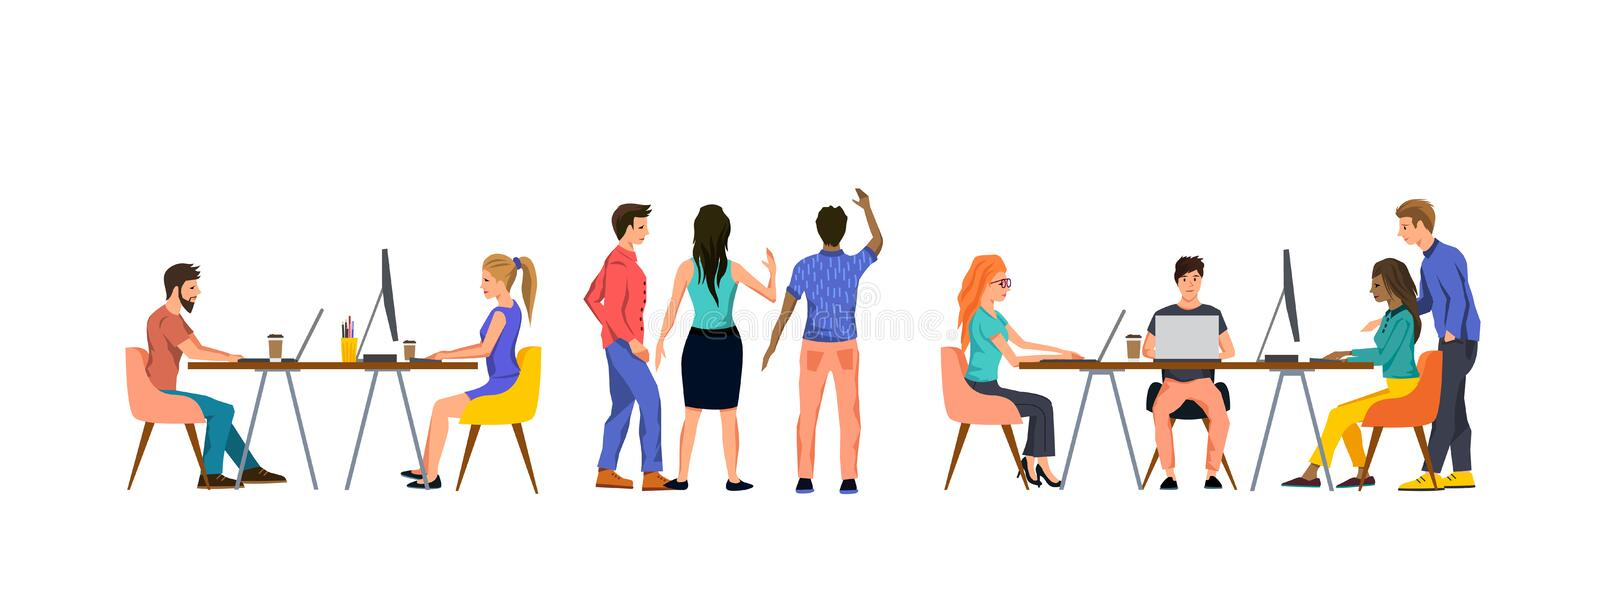 Group Of People In An Office Working As A Team vector illustration